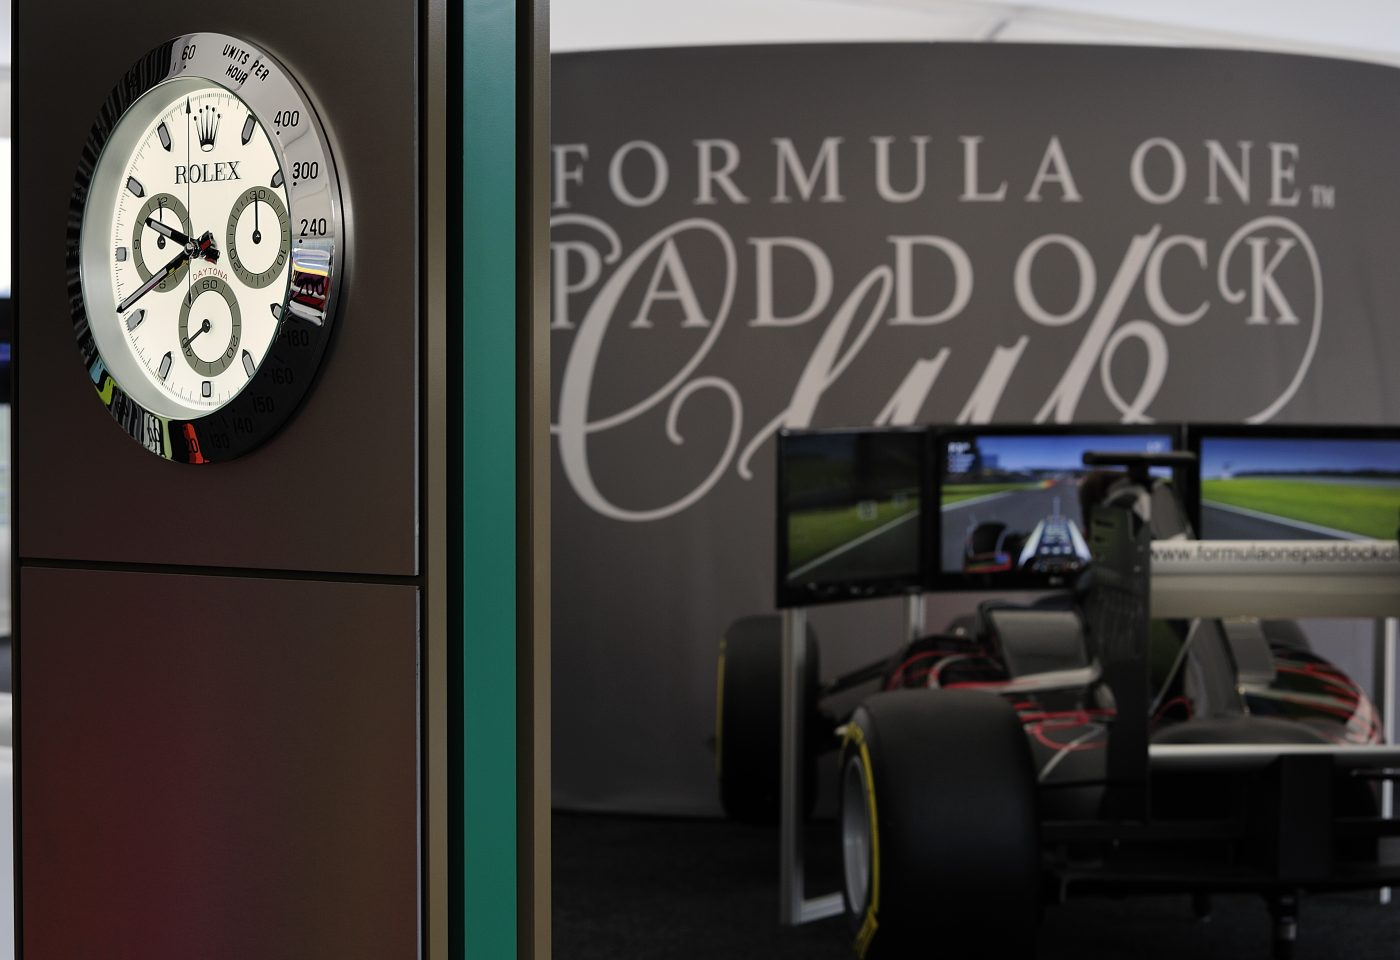 Formula One Paddock Club™